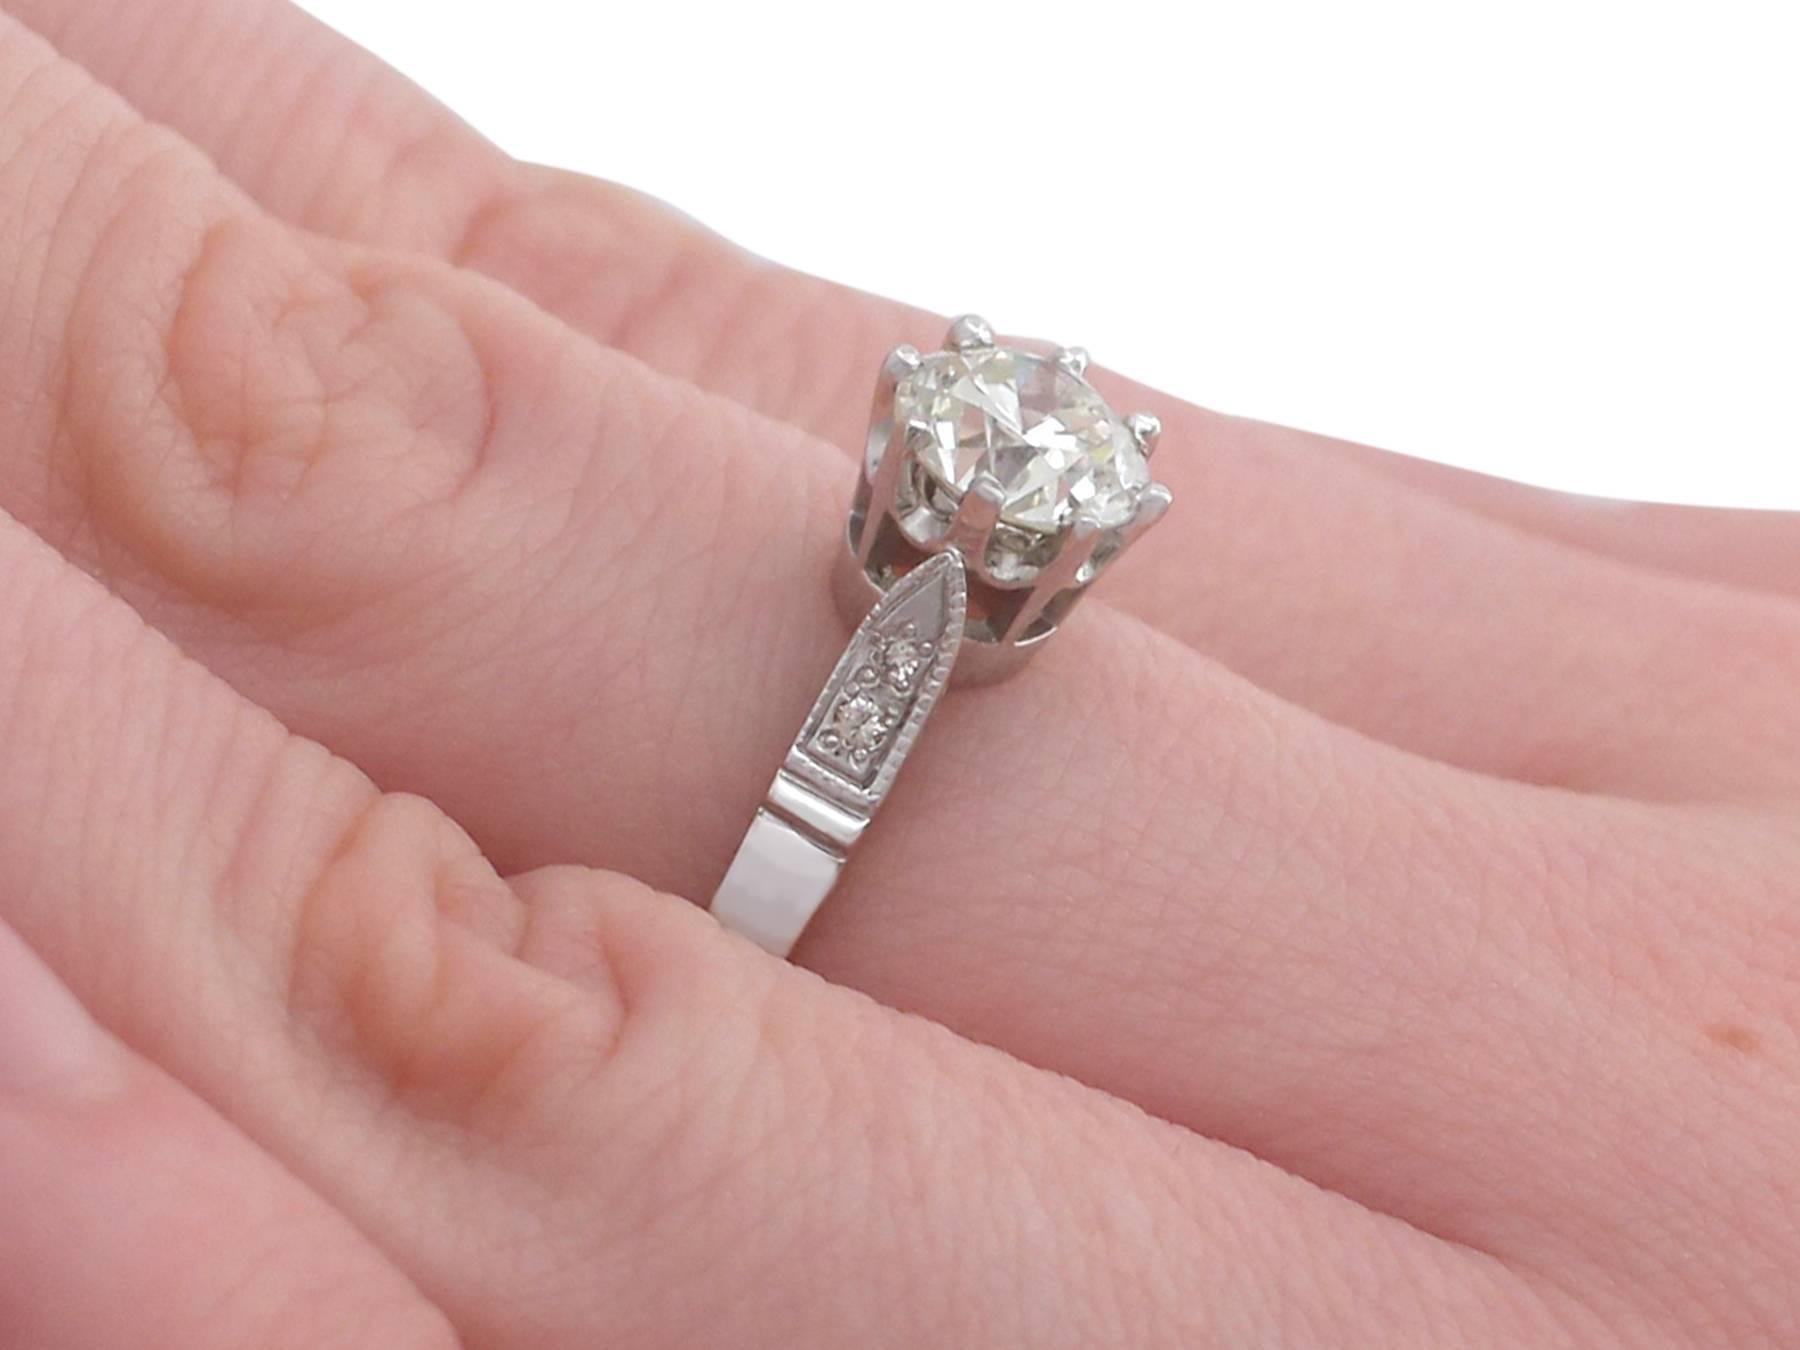 1940s 1.25 Carat Diamond and Platinum Solitaire Ring For Sale at 1stdibs